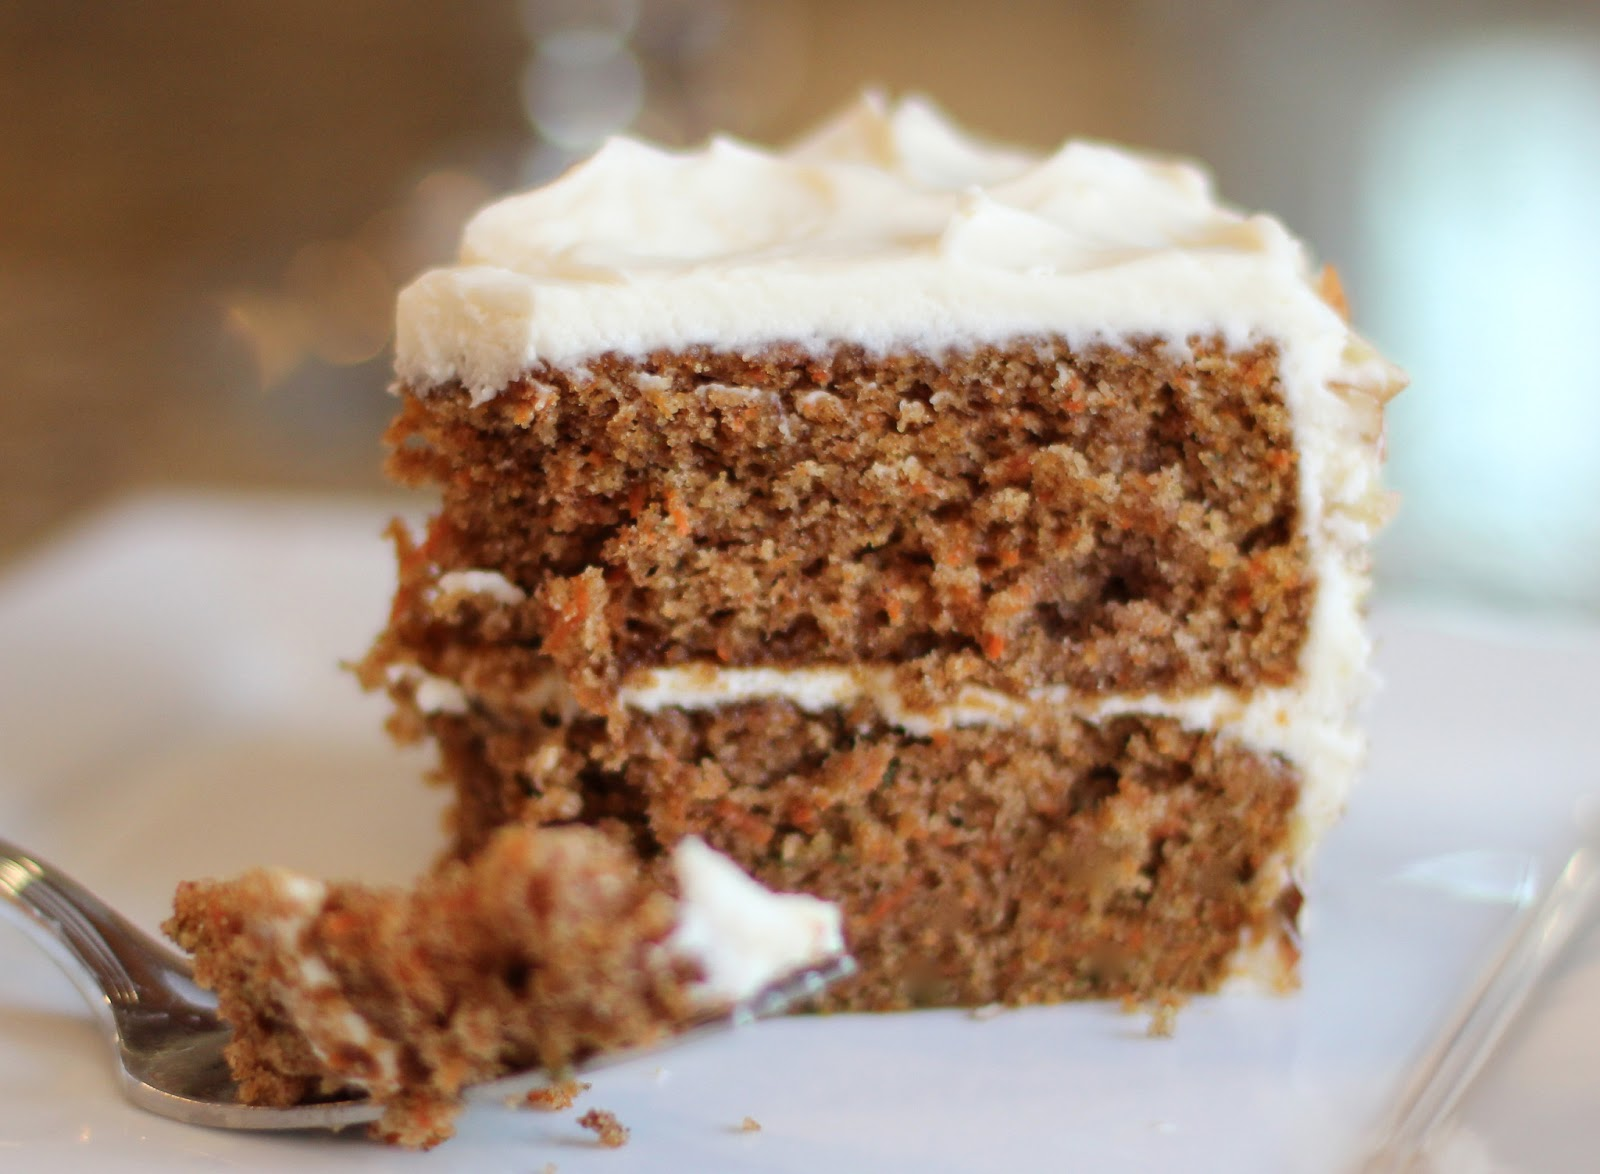 Cake With Cream Frosting : Sprinkle Some Sunshine!: carrot cake with cream cheese ...